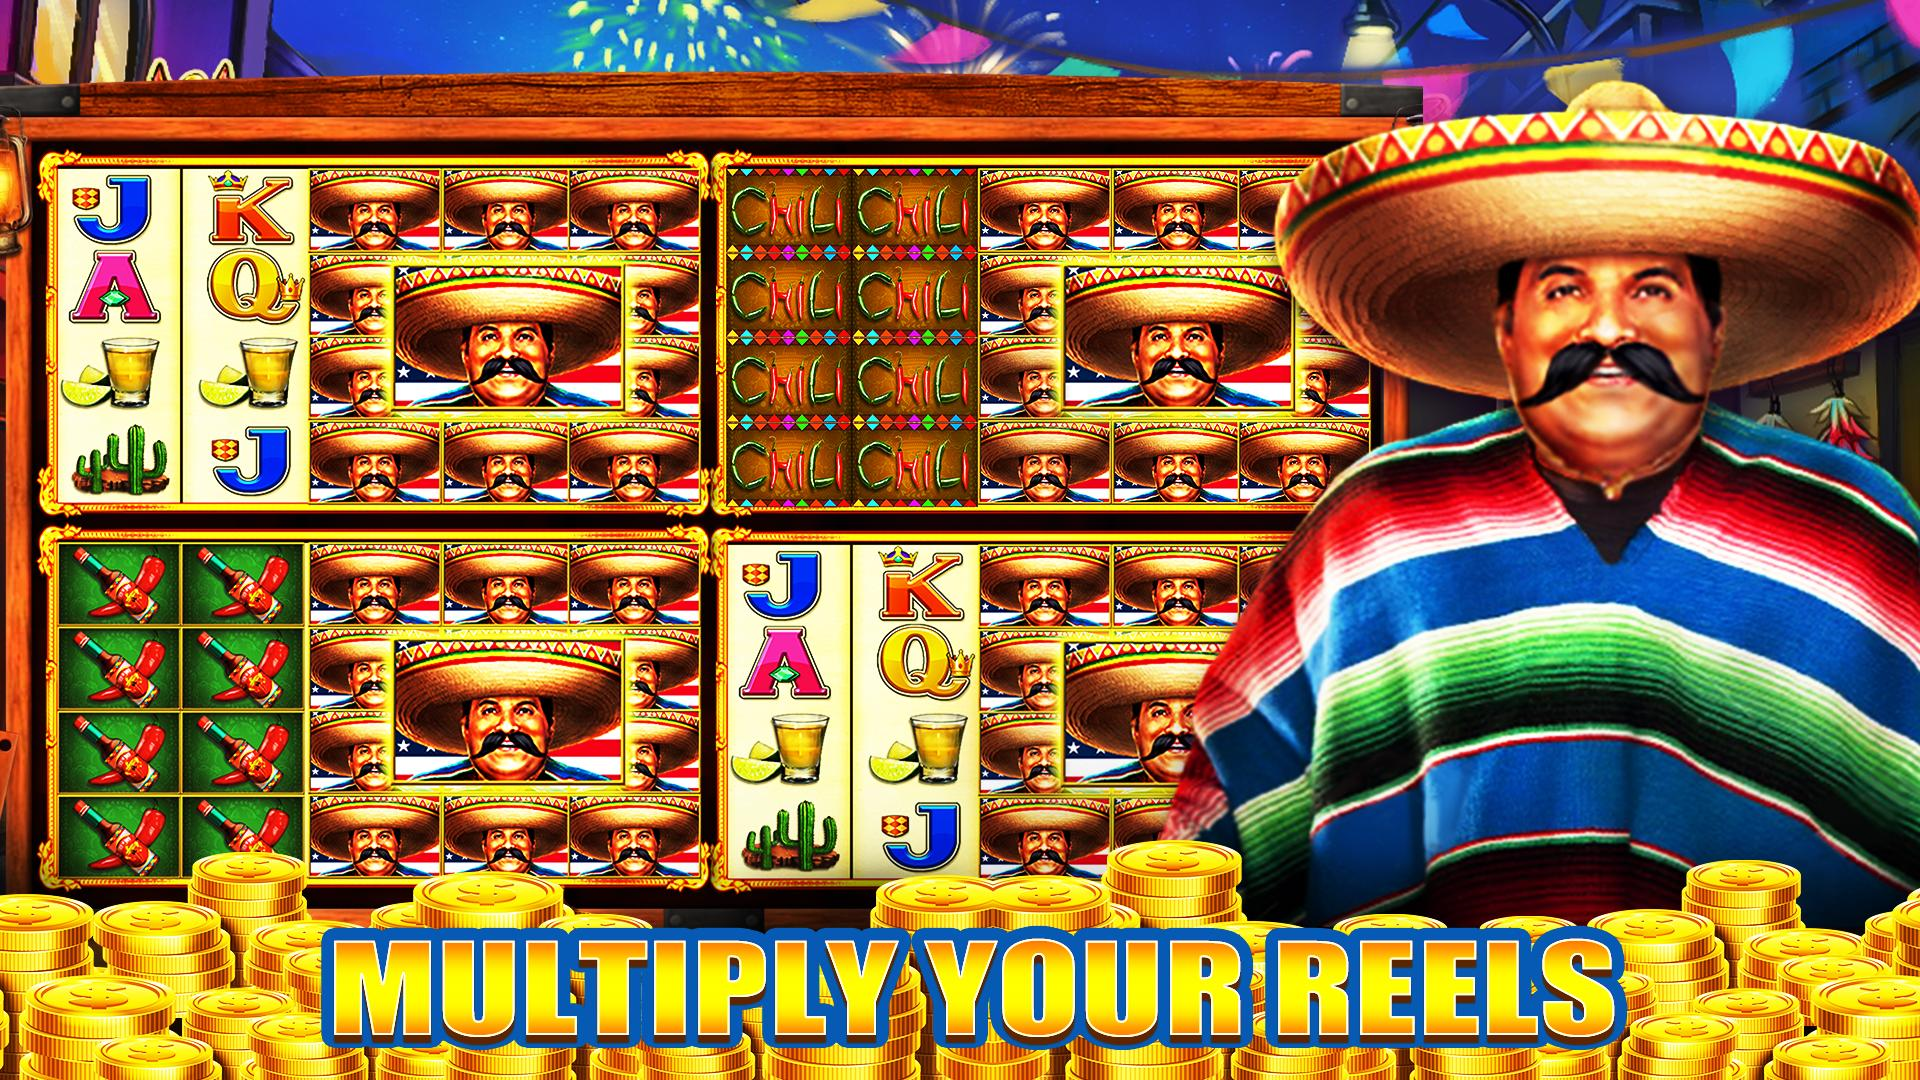 Vegas Casino Slots 2020 - 2,000,000 Free Coins 1.0.34 Screenshot 13